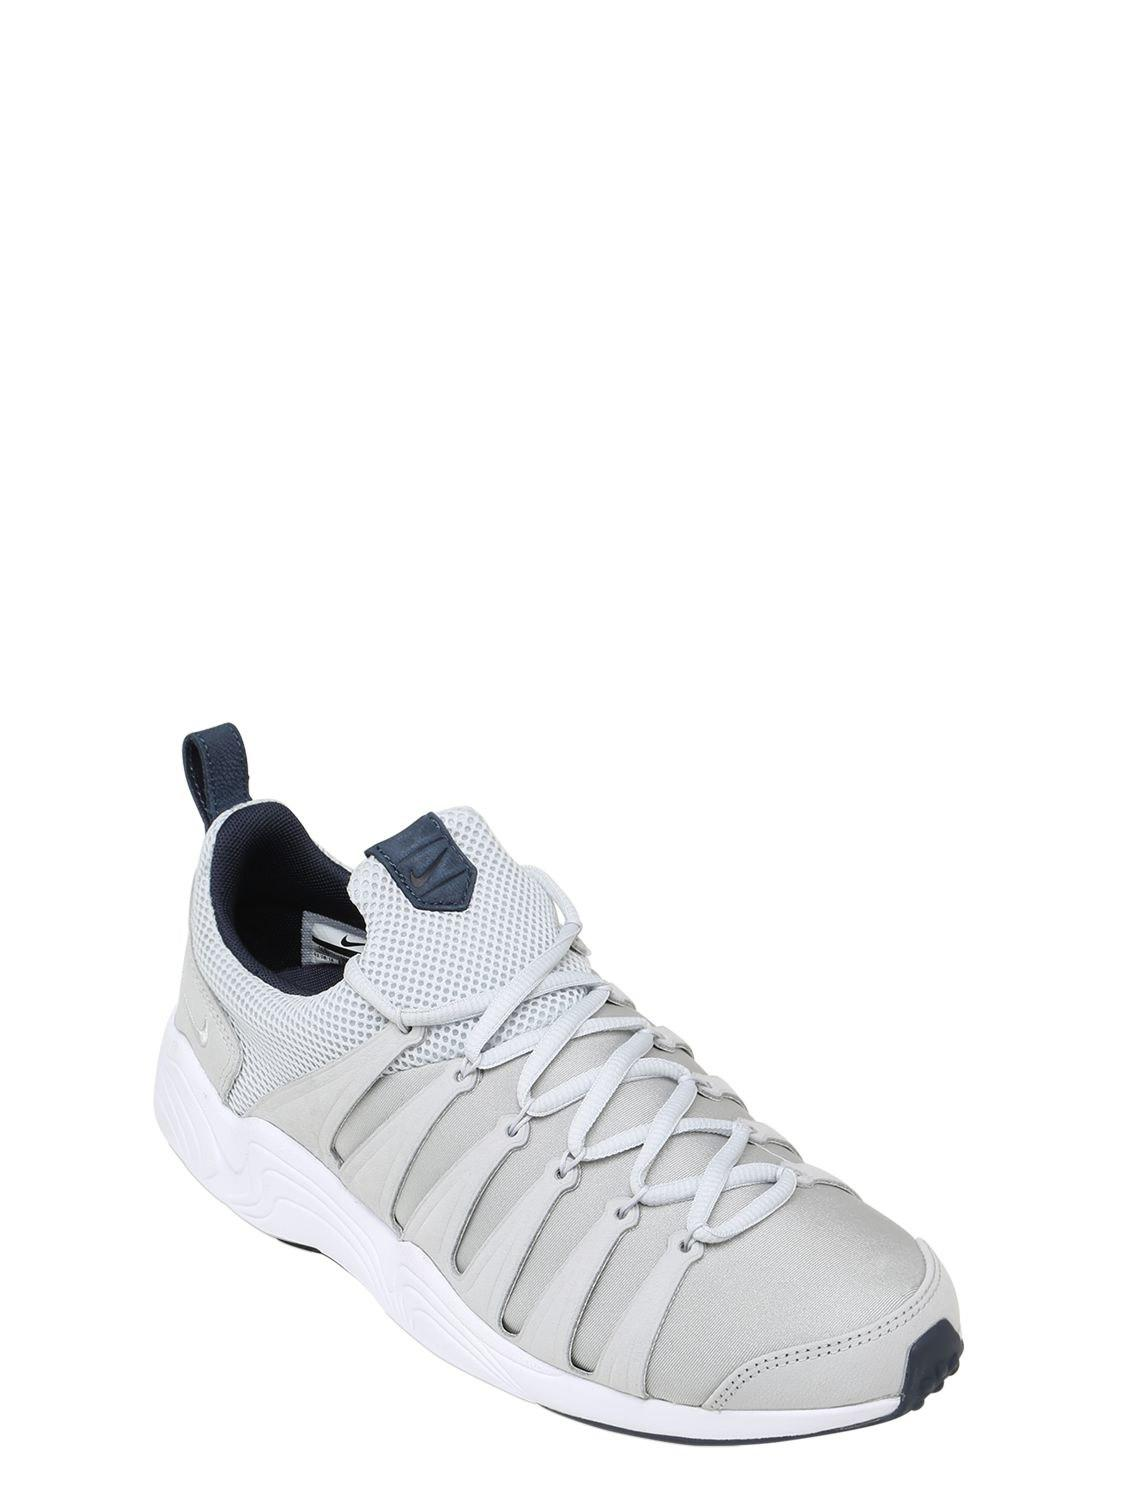 0093ec518e90ab Nike Lab Air Zoom Spirimic Sneakers in White for Men - Lyst